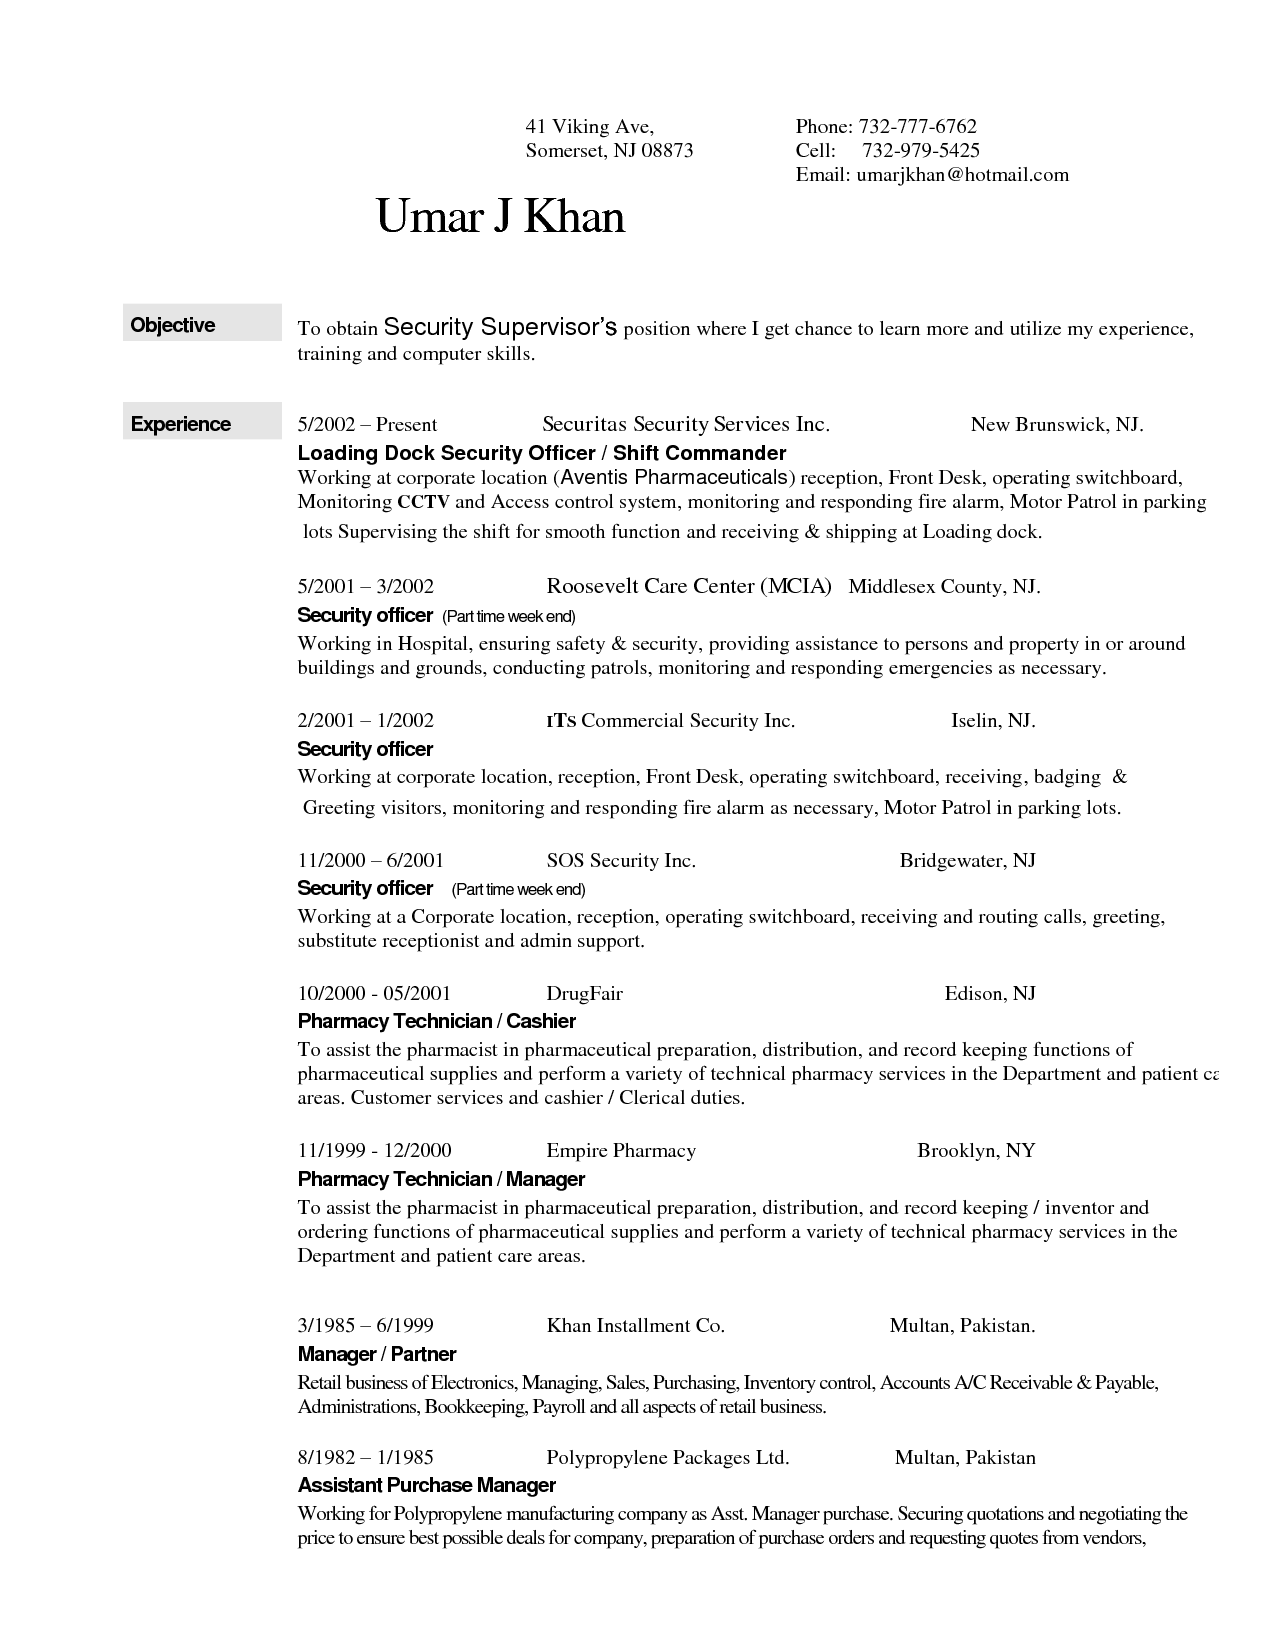 Job Resume Format, Security Guard, Entry Level, Resume Examples, Resume  Format, Weights